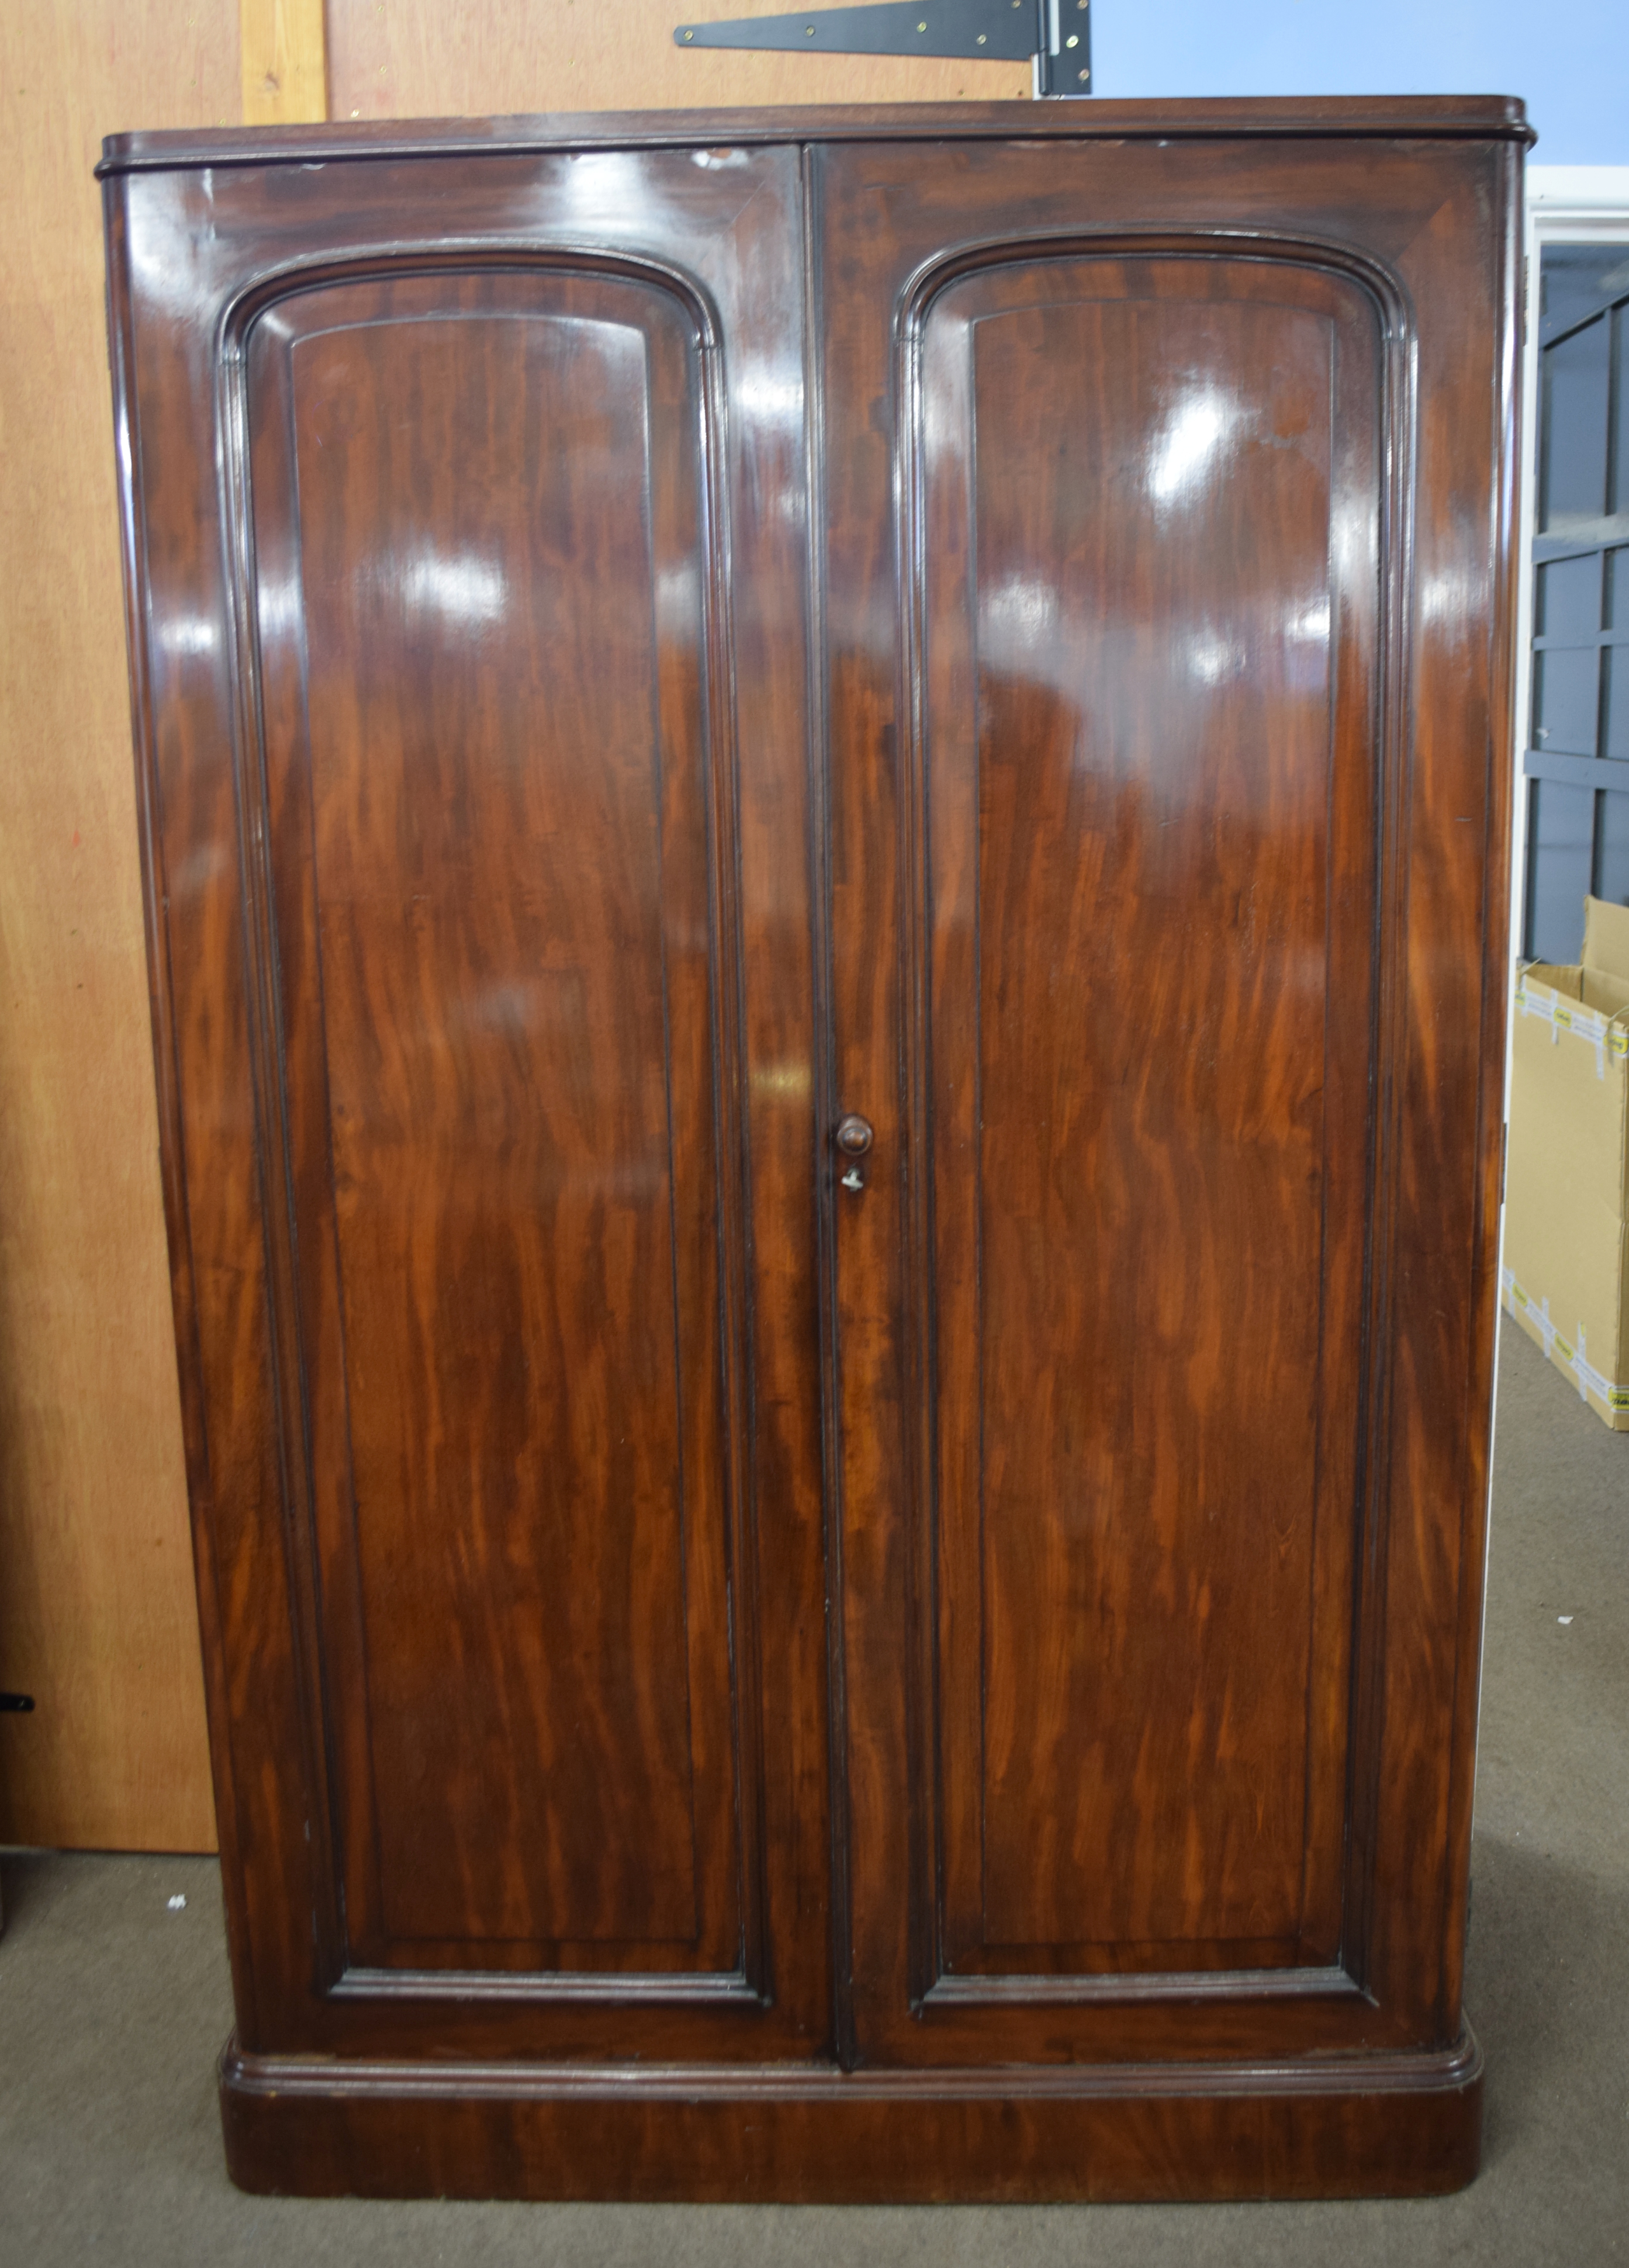 Victorian mahogany linen press cabinet with two large panelled doors opening to an interior with - Image 2 of 3